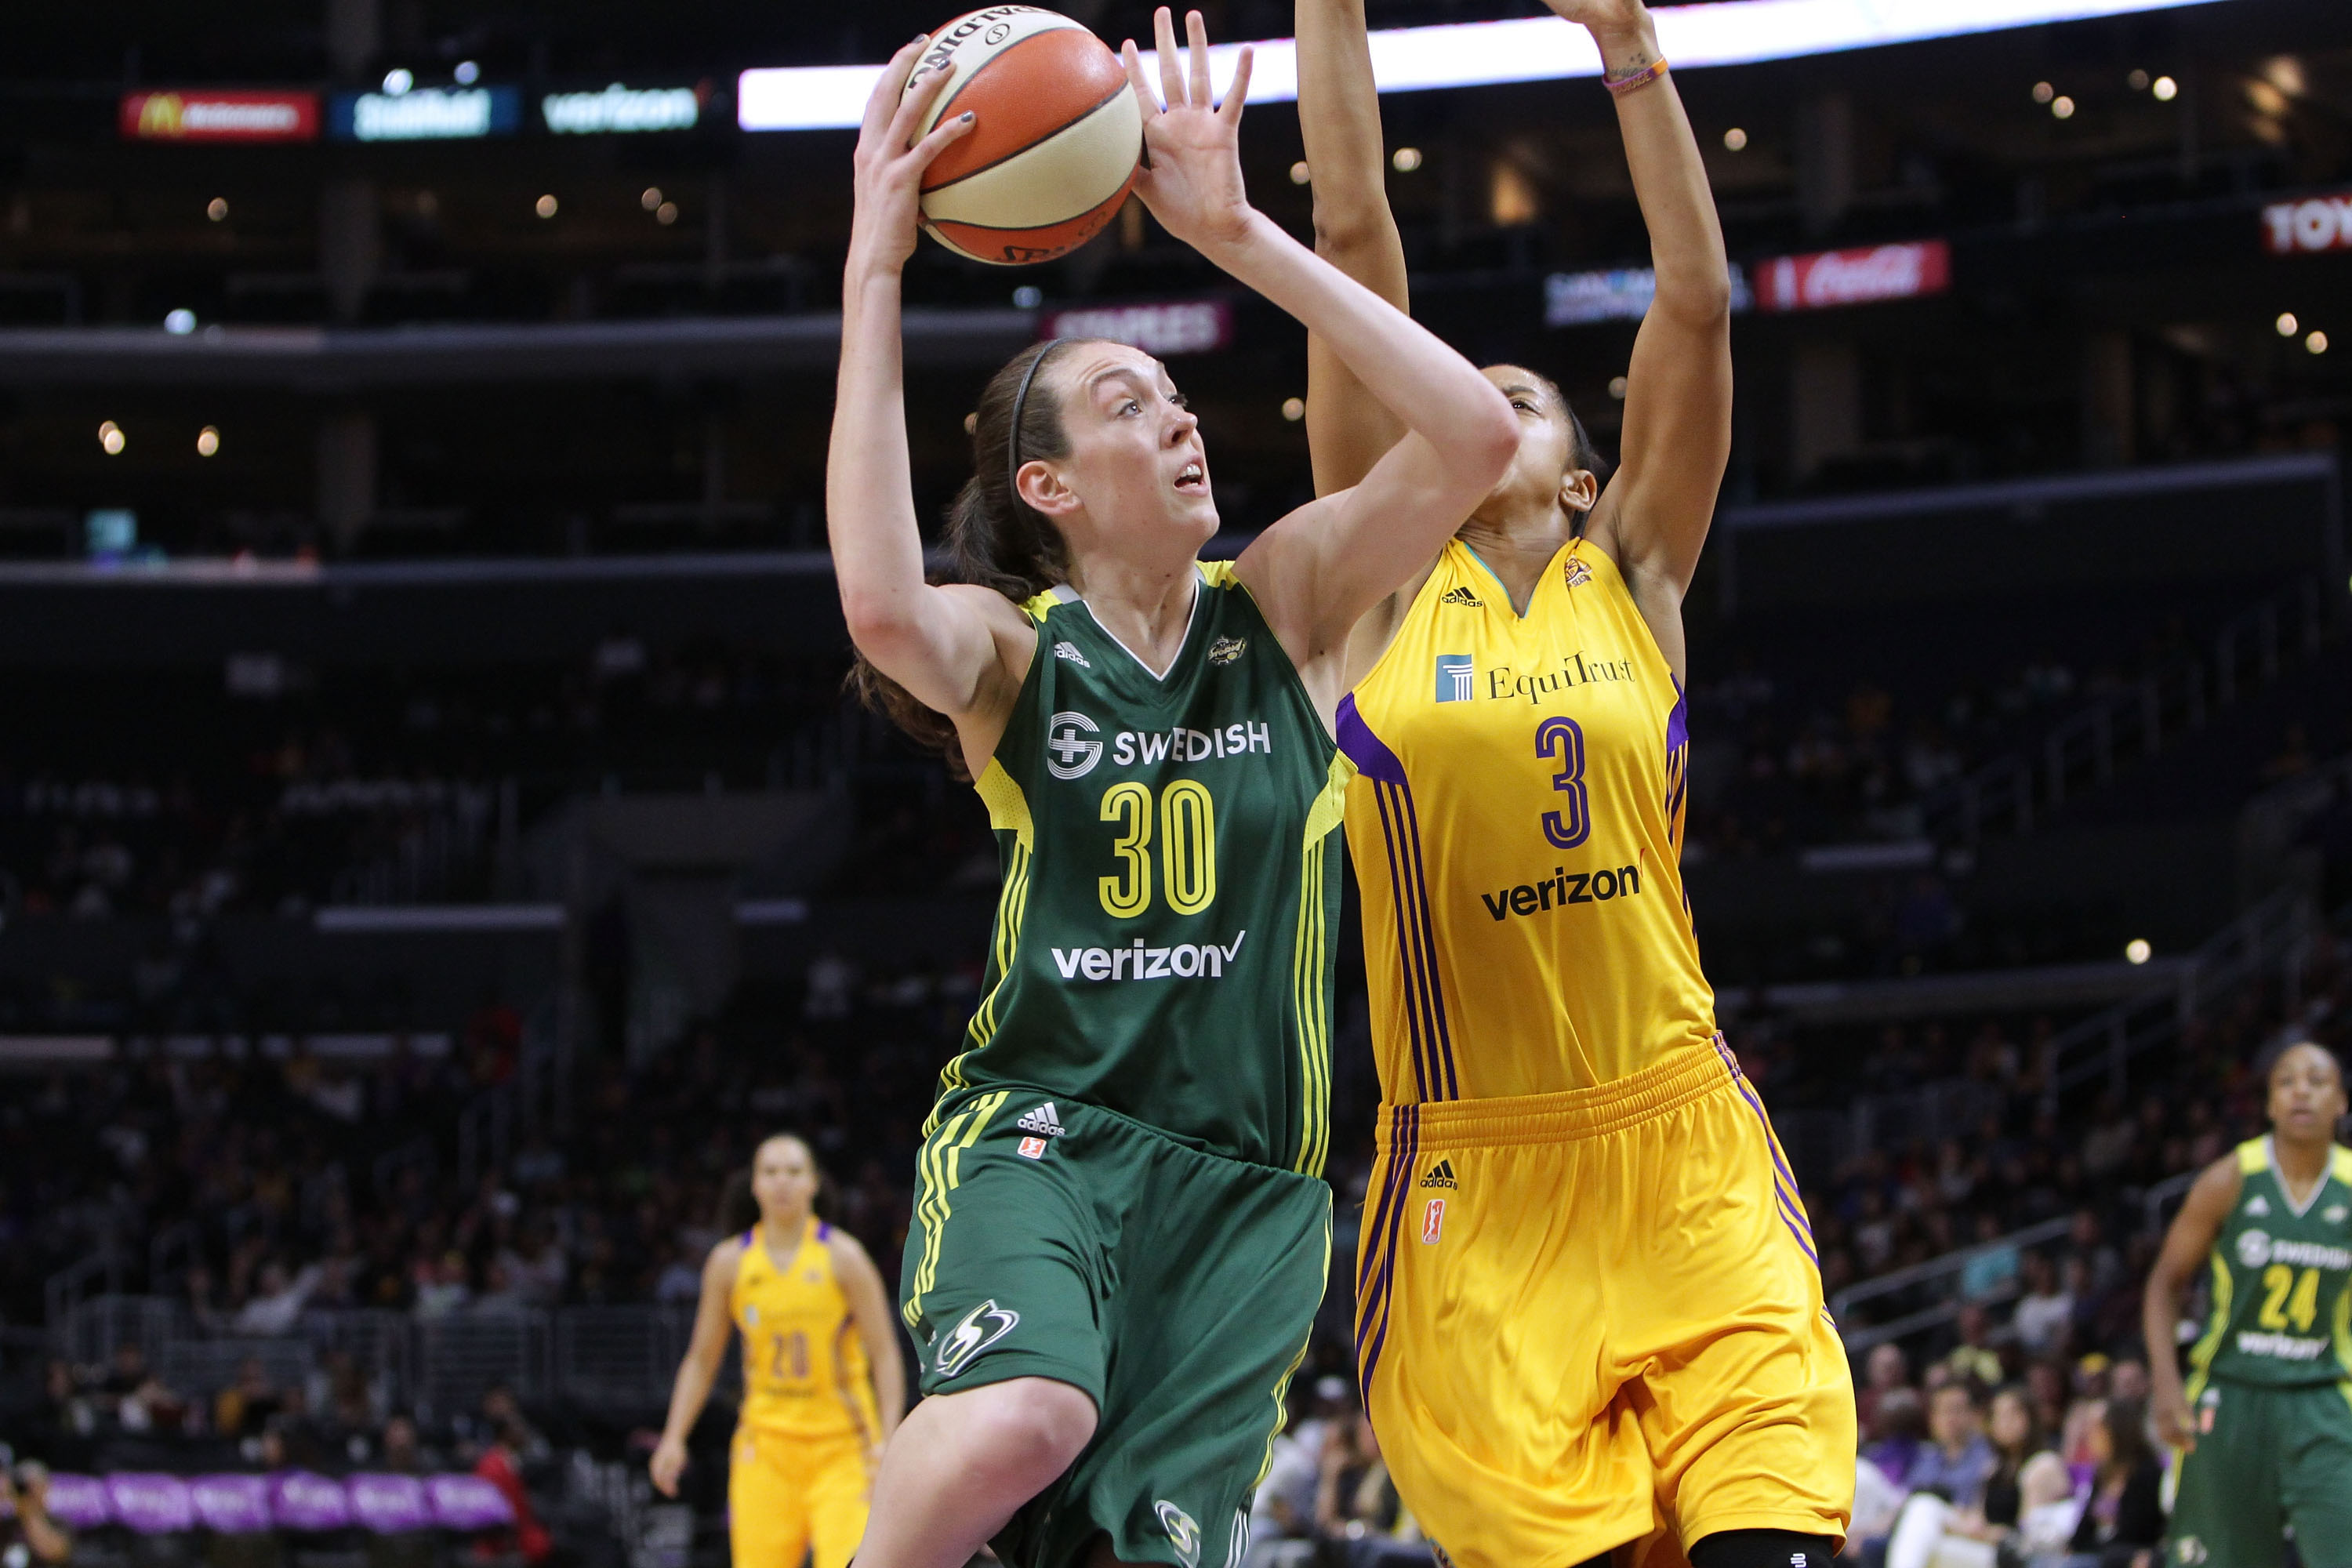 Stewart was a stud at Connecticut, but her stock continued to rise when she entered the WNBA this past season. Stewart won Rookie of the Year honors after averaging 18.3 points, 9.3 rebounds and 1.9 blocks for the Seattle Storm. She led her team to the postseason for the first time since 2013.